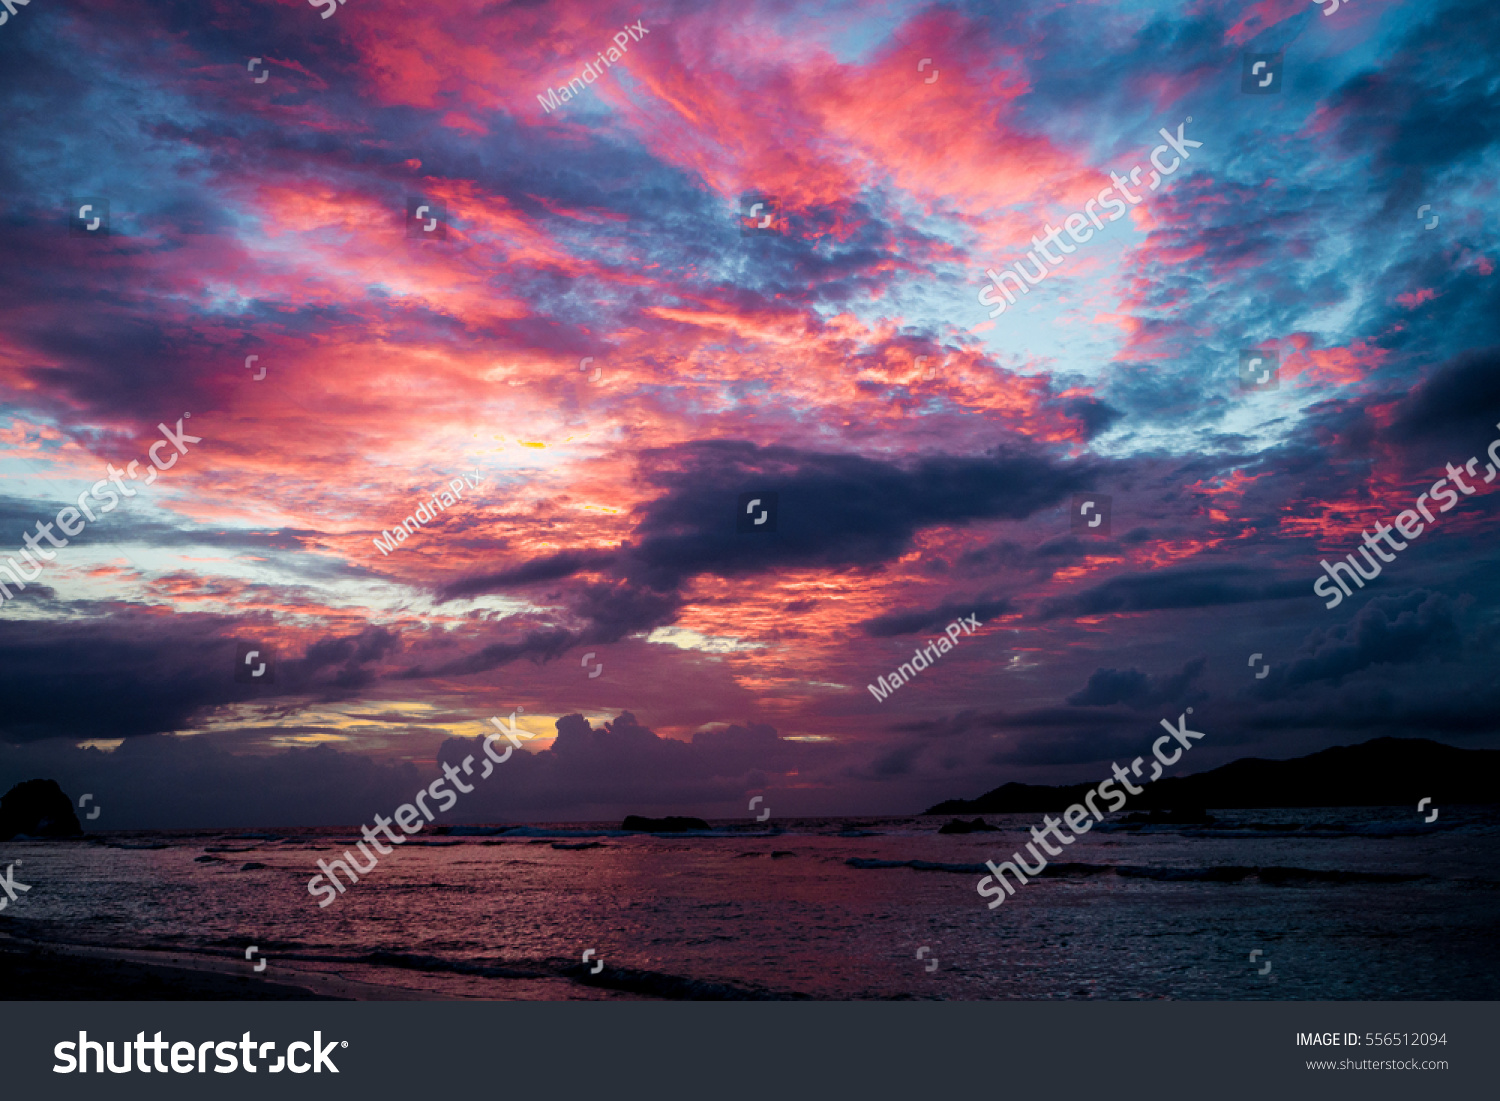 Sunset seascape with dramatic sky and colorful clouds #556512094